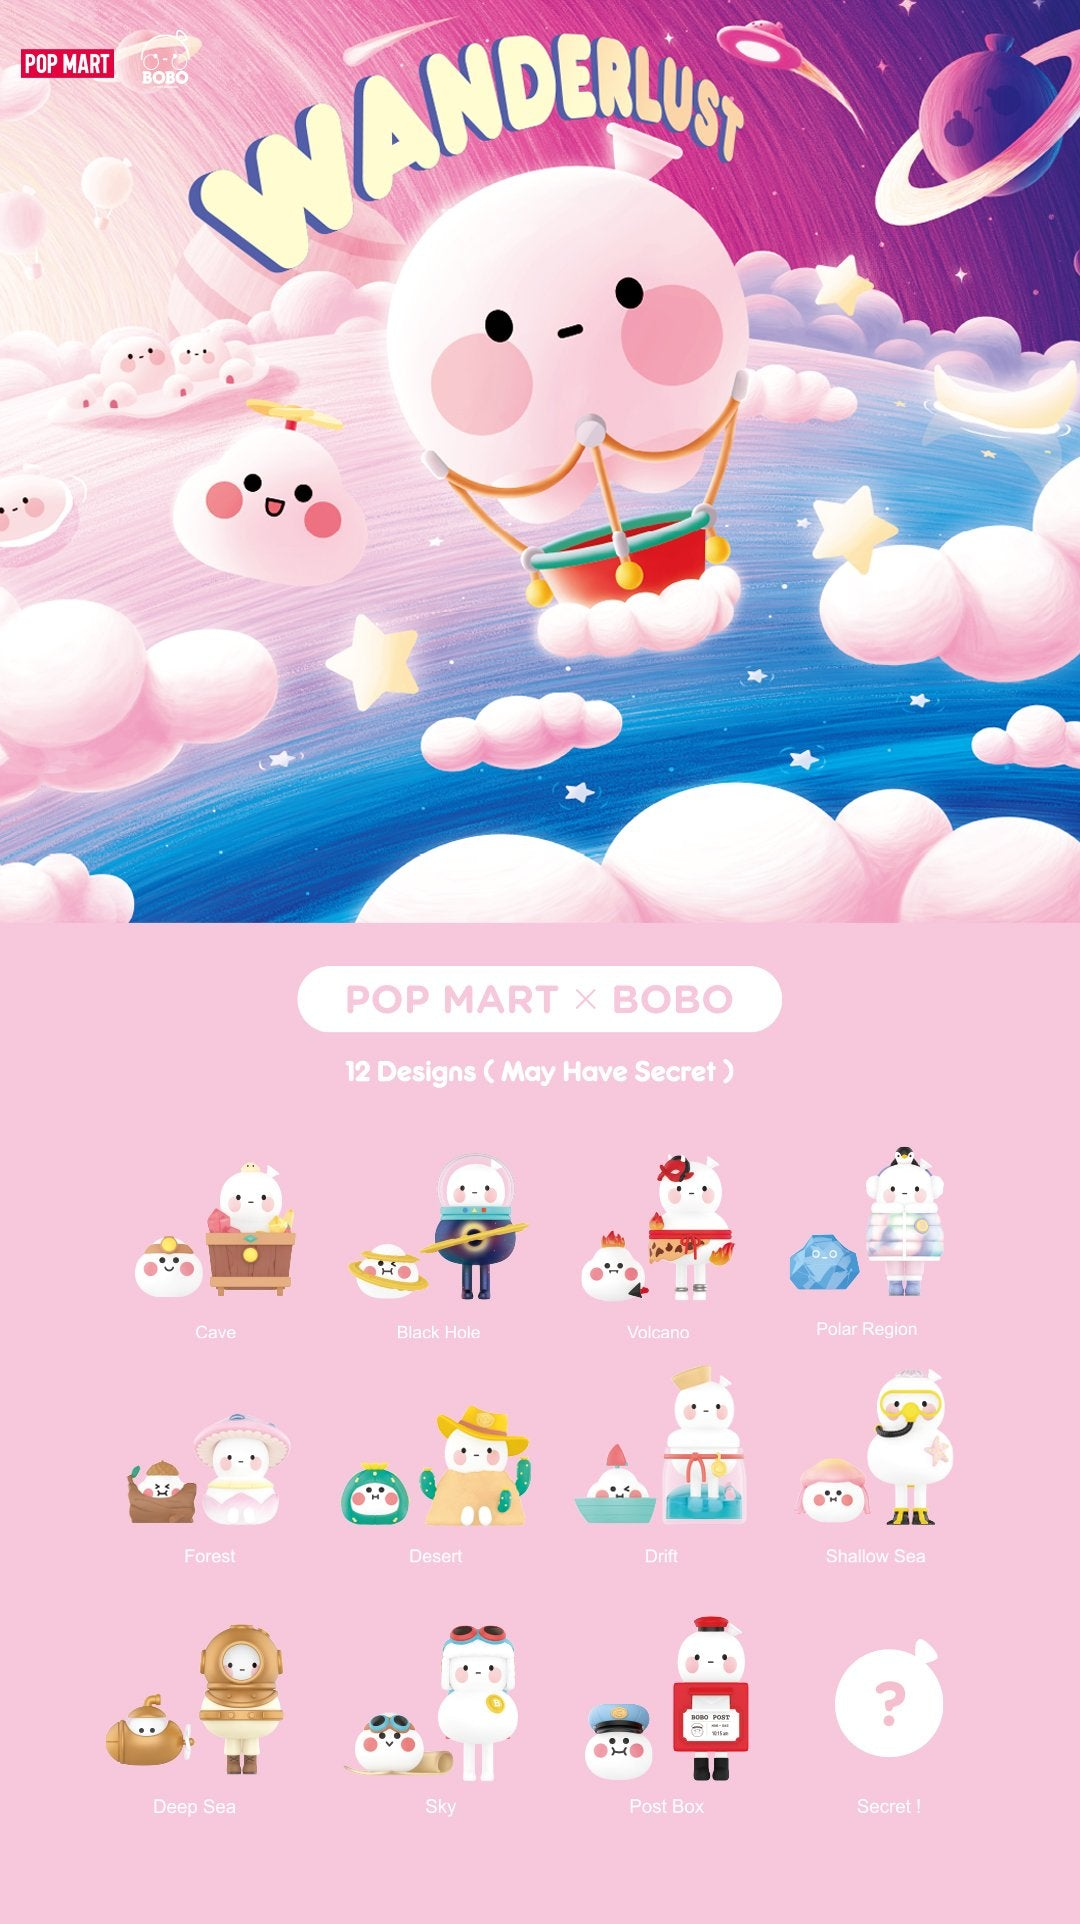 *Pre-order* Bobo and Coco Wanderlust Series by POP MART